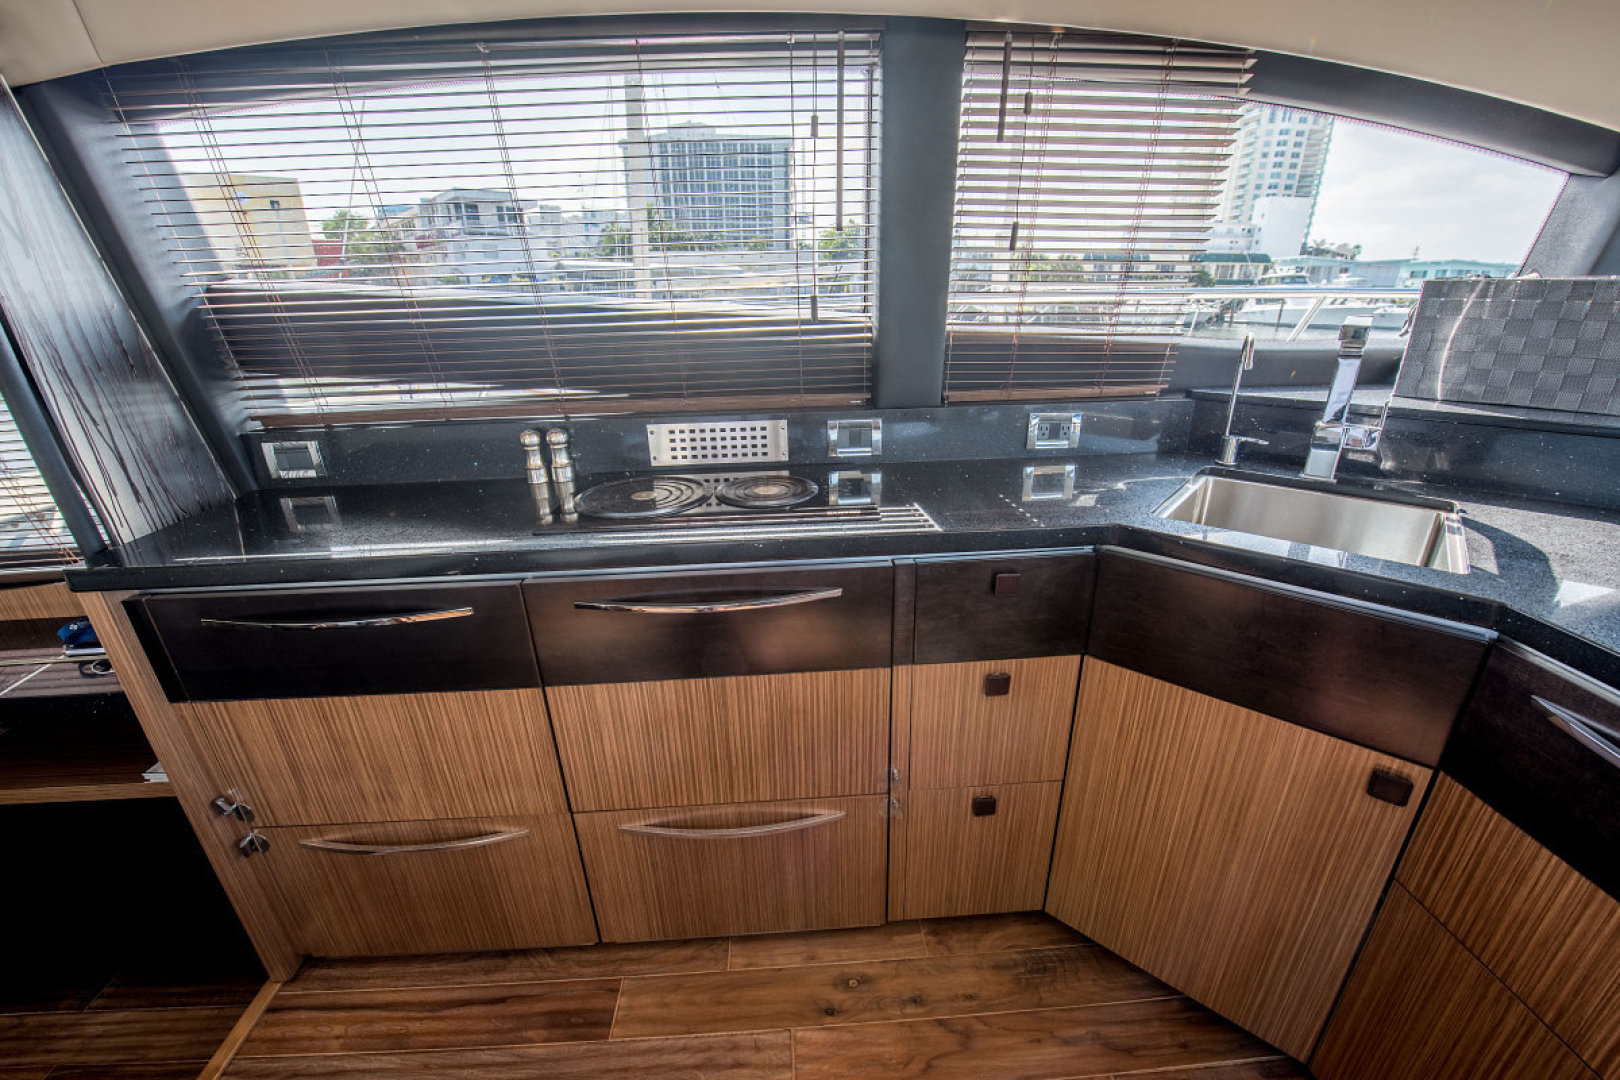 Sea Ray-L590 Fly 2016-2016 Sea Ray L590 Fly Ft. Lauderdale-Florida-United States-1284625 | Thumbnail